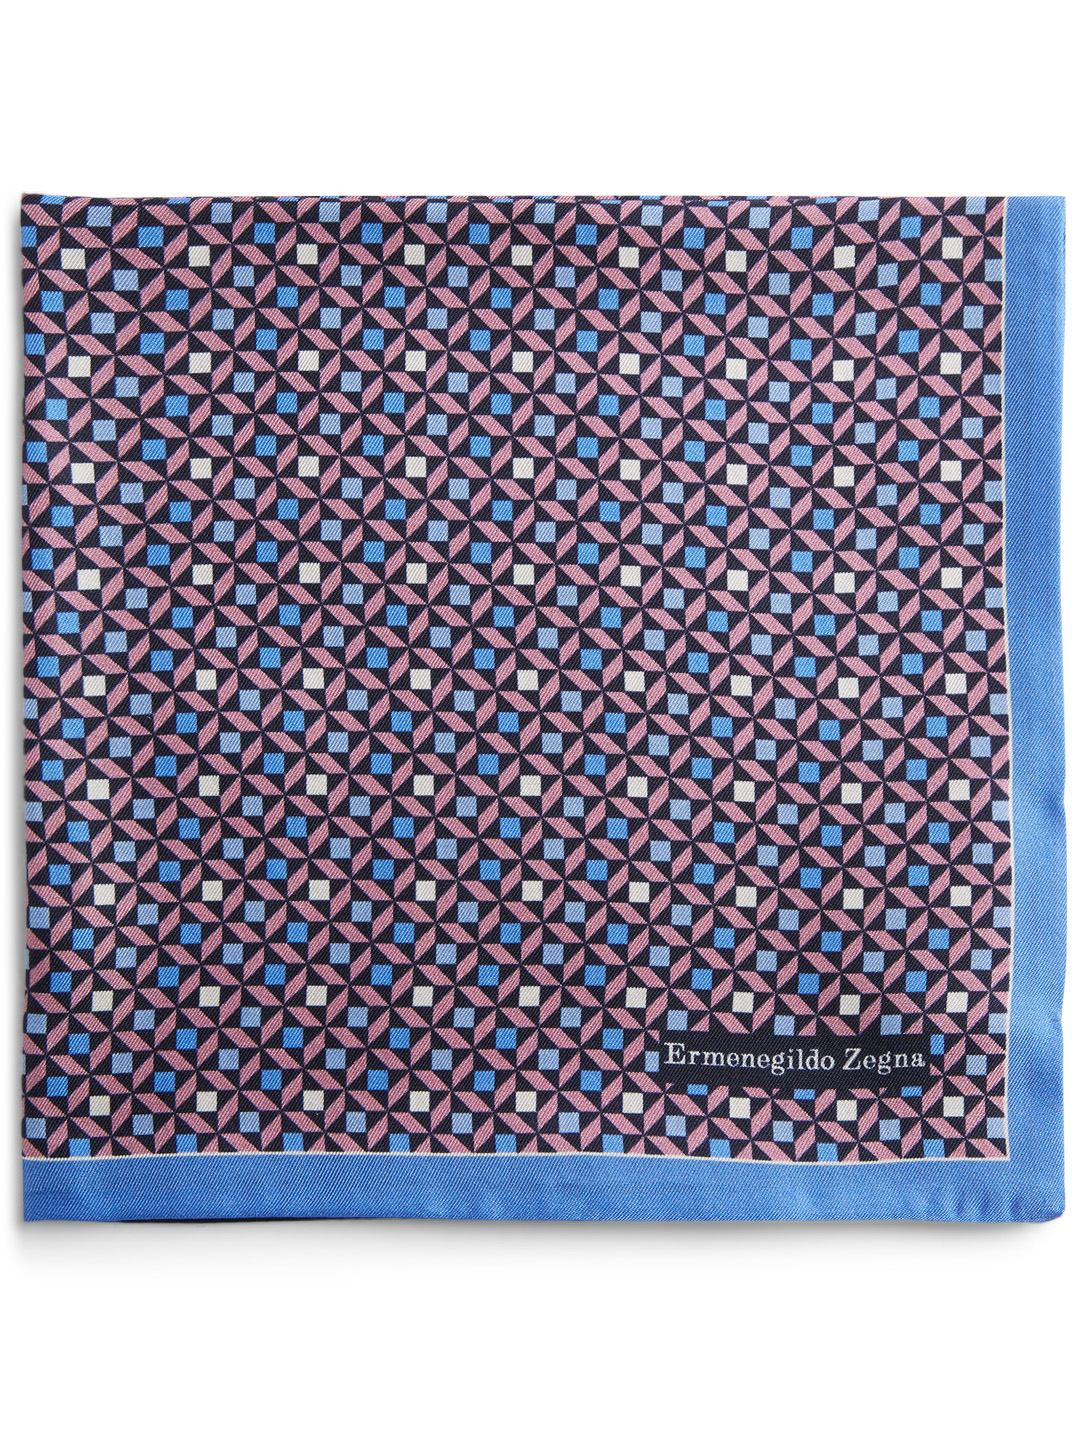 ERMENEGILDO ZEGNA Silk Printed Pocket Square Men's Blue